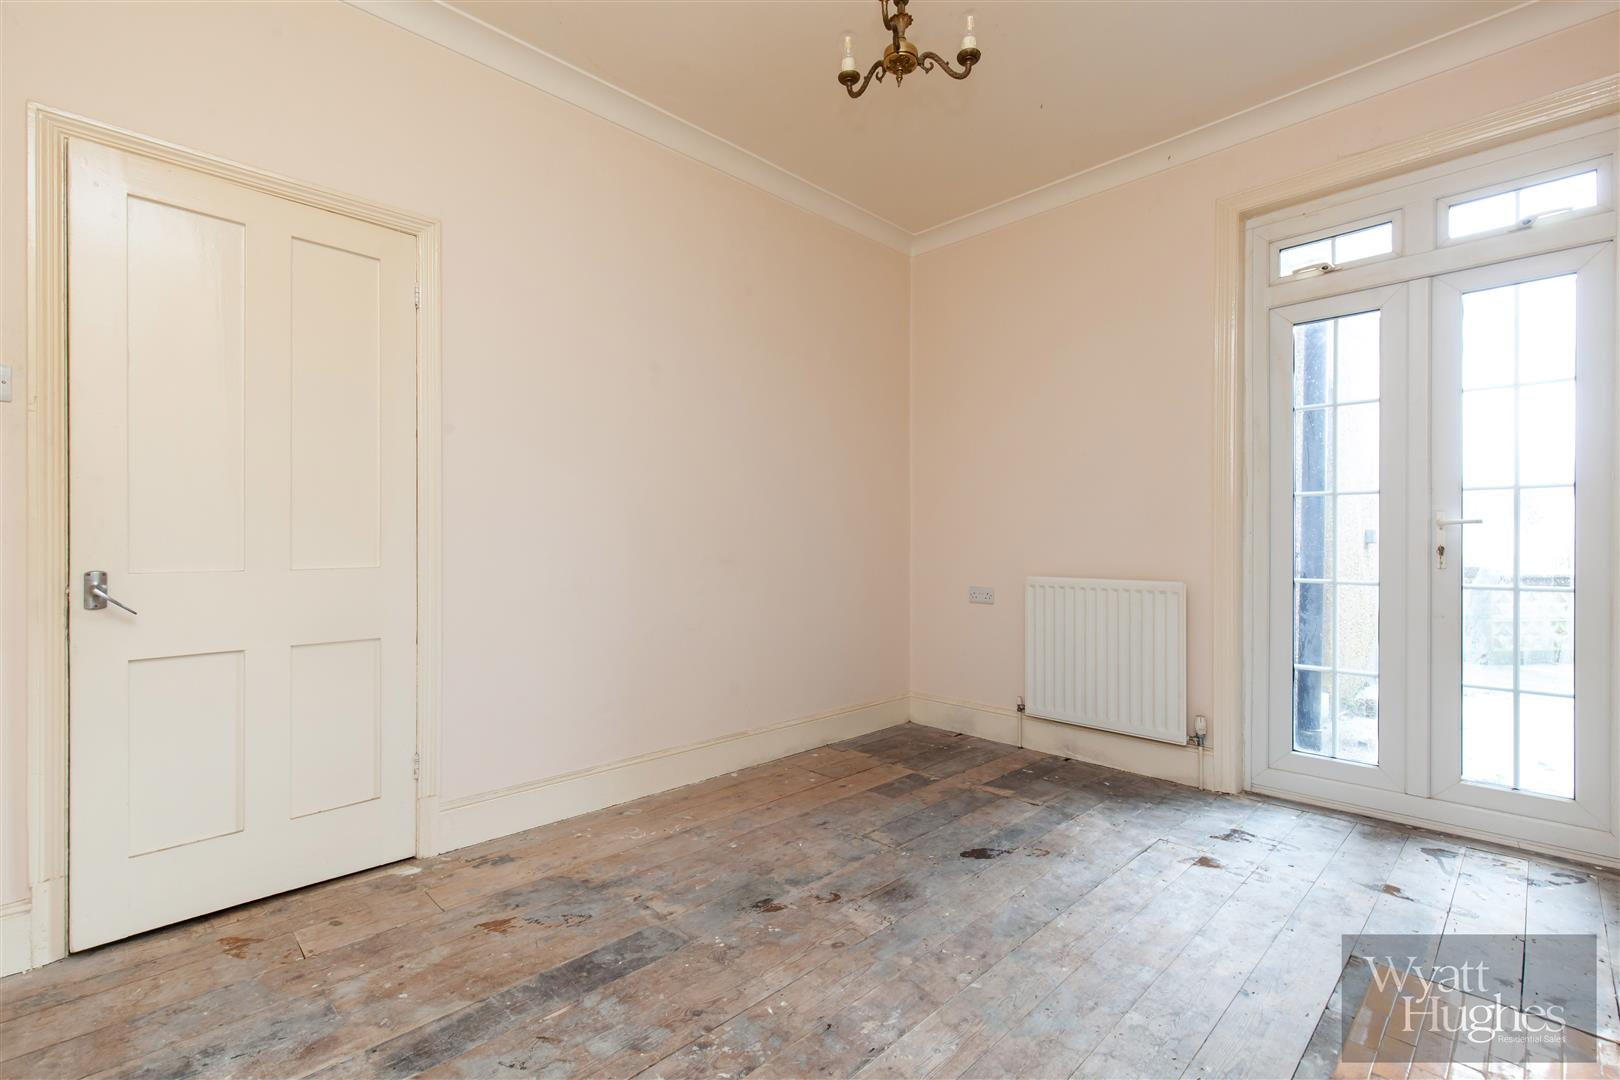 3 bed end-of-terrace-house for sale in Burry Road, St. Leonards-On-Sea 14